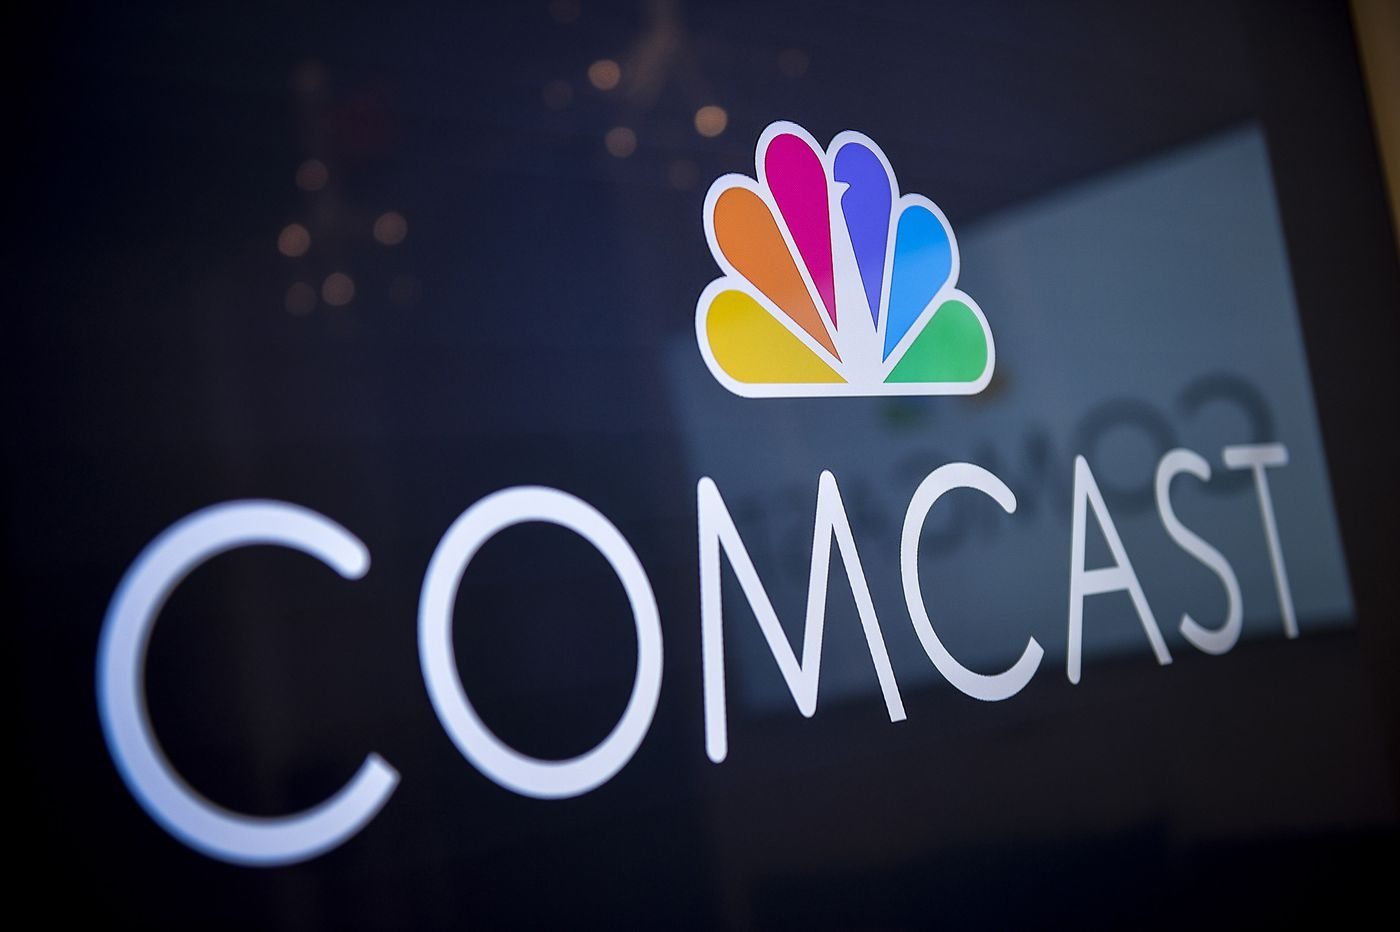 Comcast profits up 14 percent despite losing 121,000 cable-TV subscribers